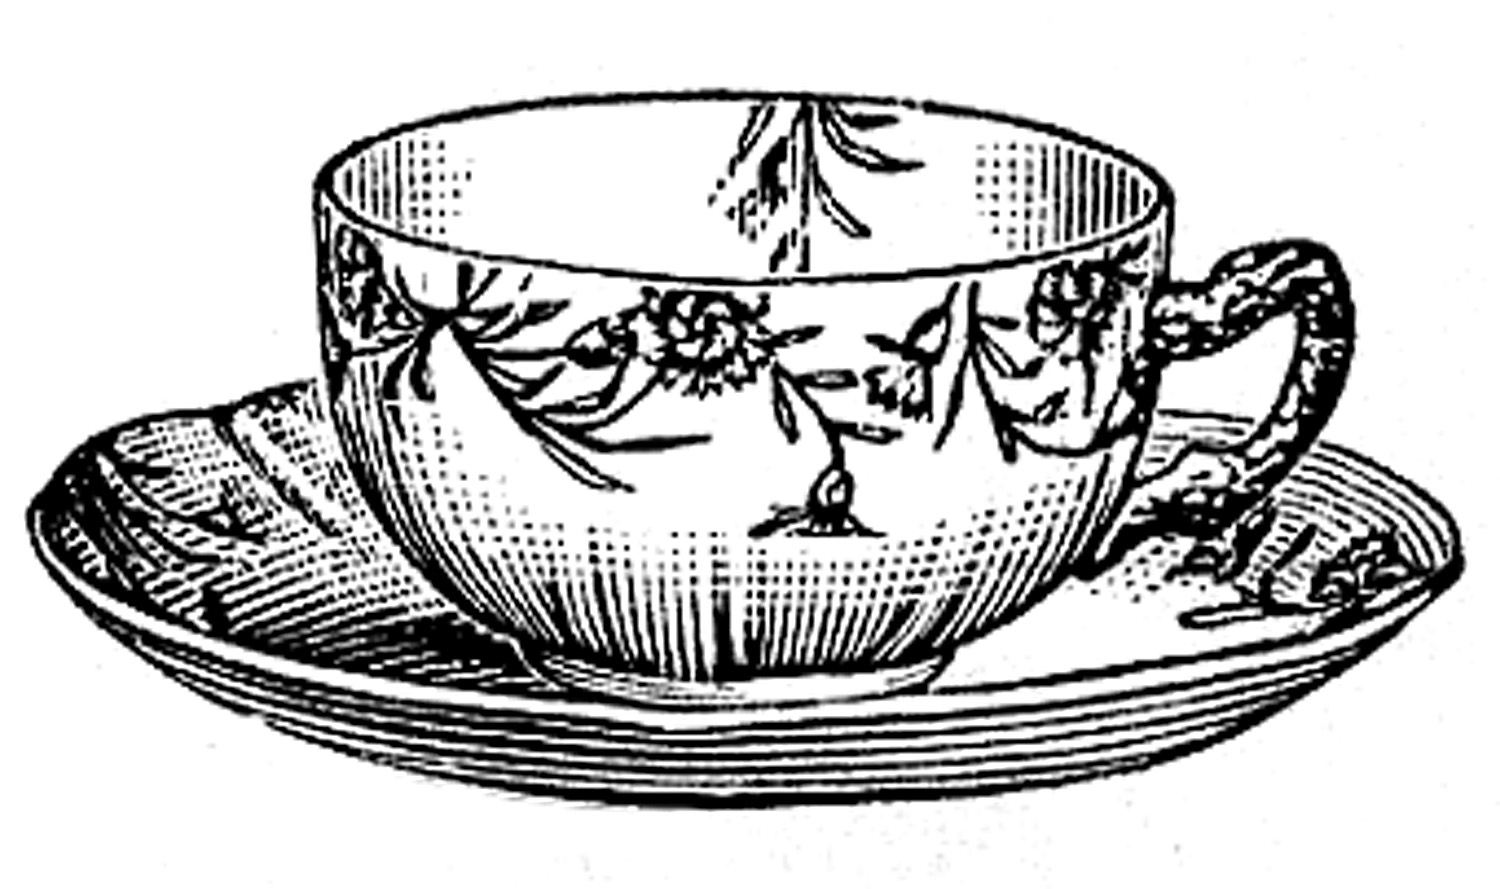 Vintage teacup clipart freeuse download 10 Black and White Teacup Clip Art Images - The Graphics Fairy freeuse download